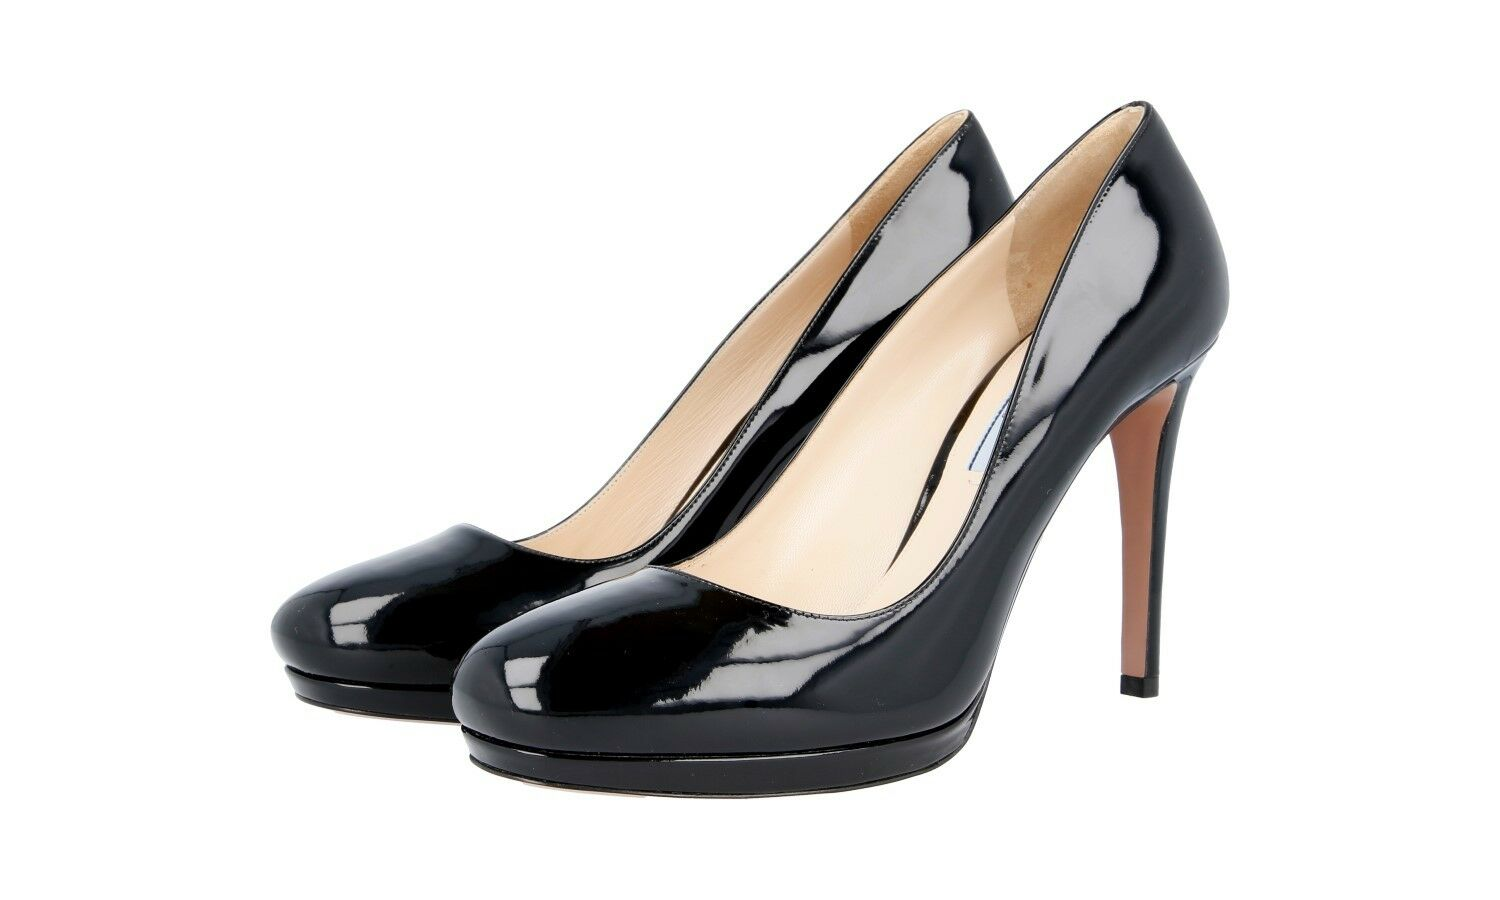 LUXUS KLASSIKER PRADA PUMPS SCHUHE 1IP286 SCHWARZ ABSOLUTER KLASSIKER LUXUS NEU NEW 36,5 37 606f7c